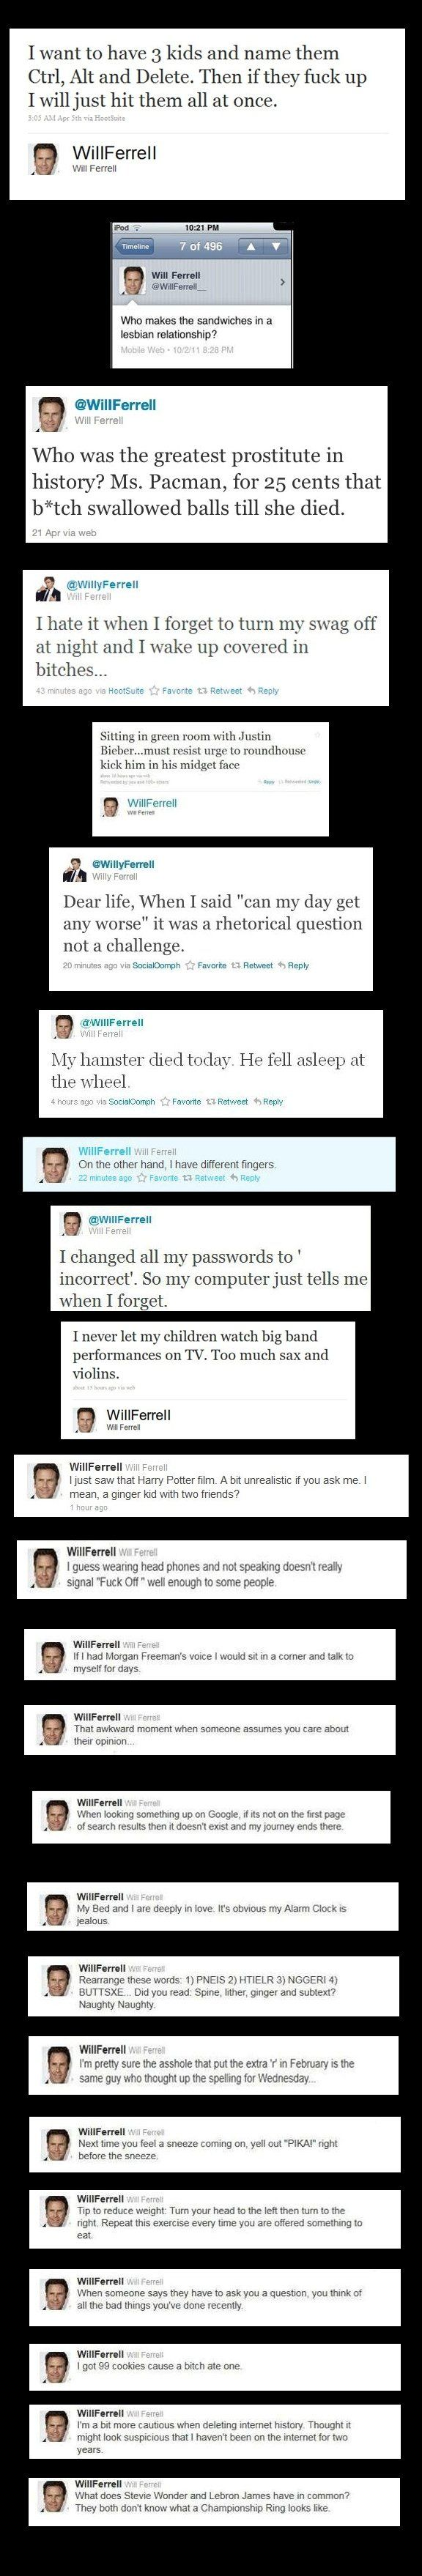 hilarious will ferrel tweets! They are worth reading!